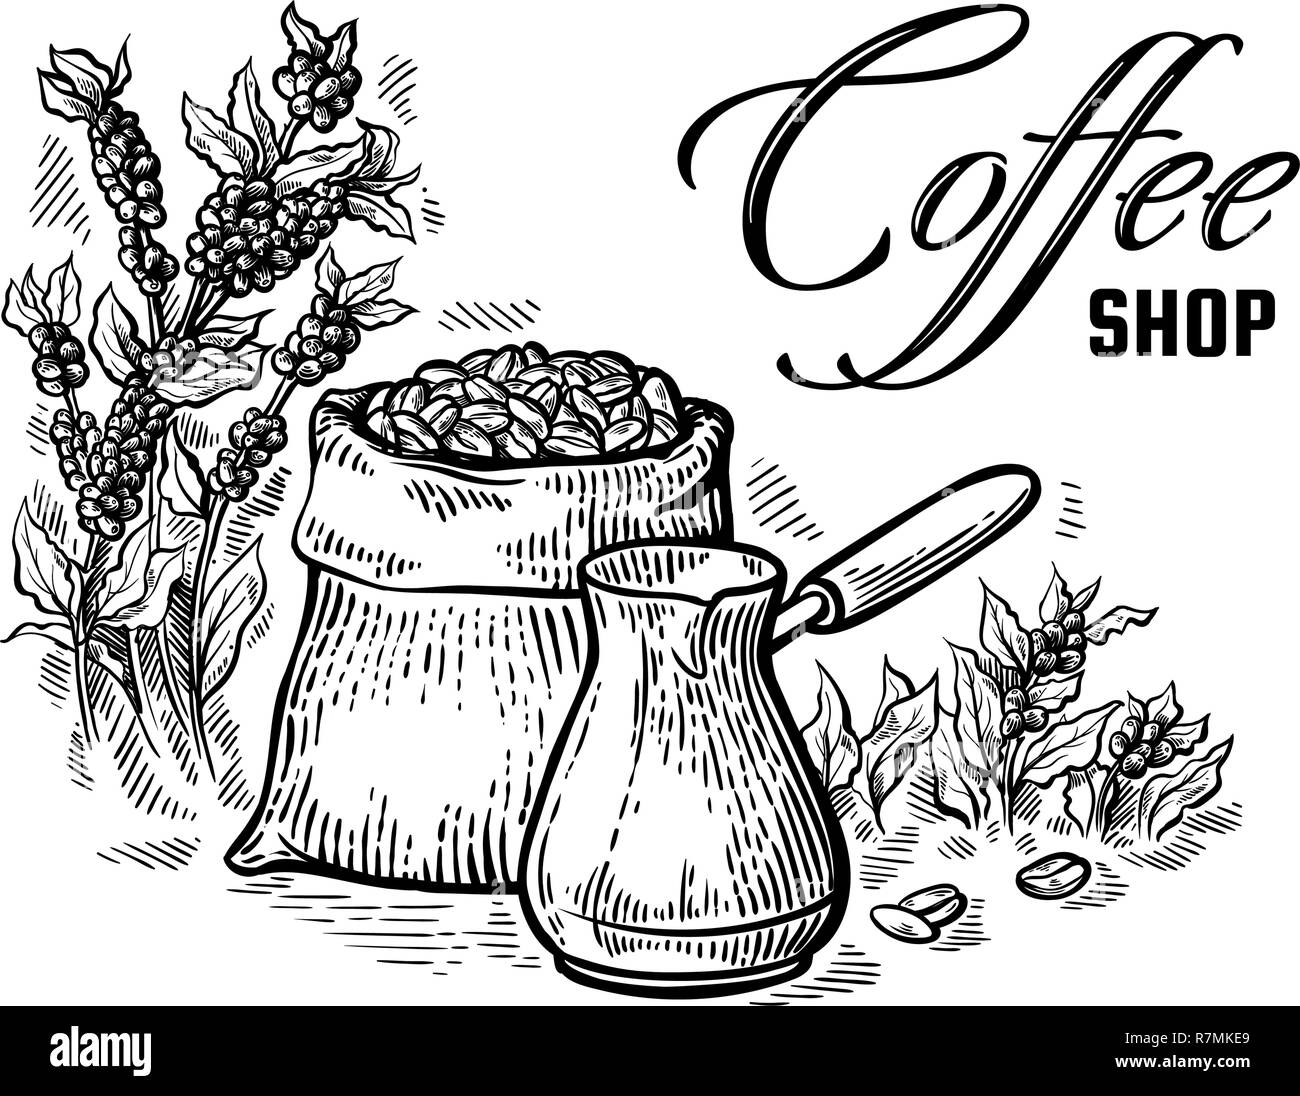 coffee beans in full bag and coffeepot in graphic style vector illustration - Stock Image